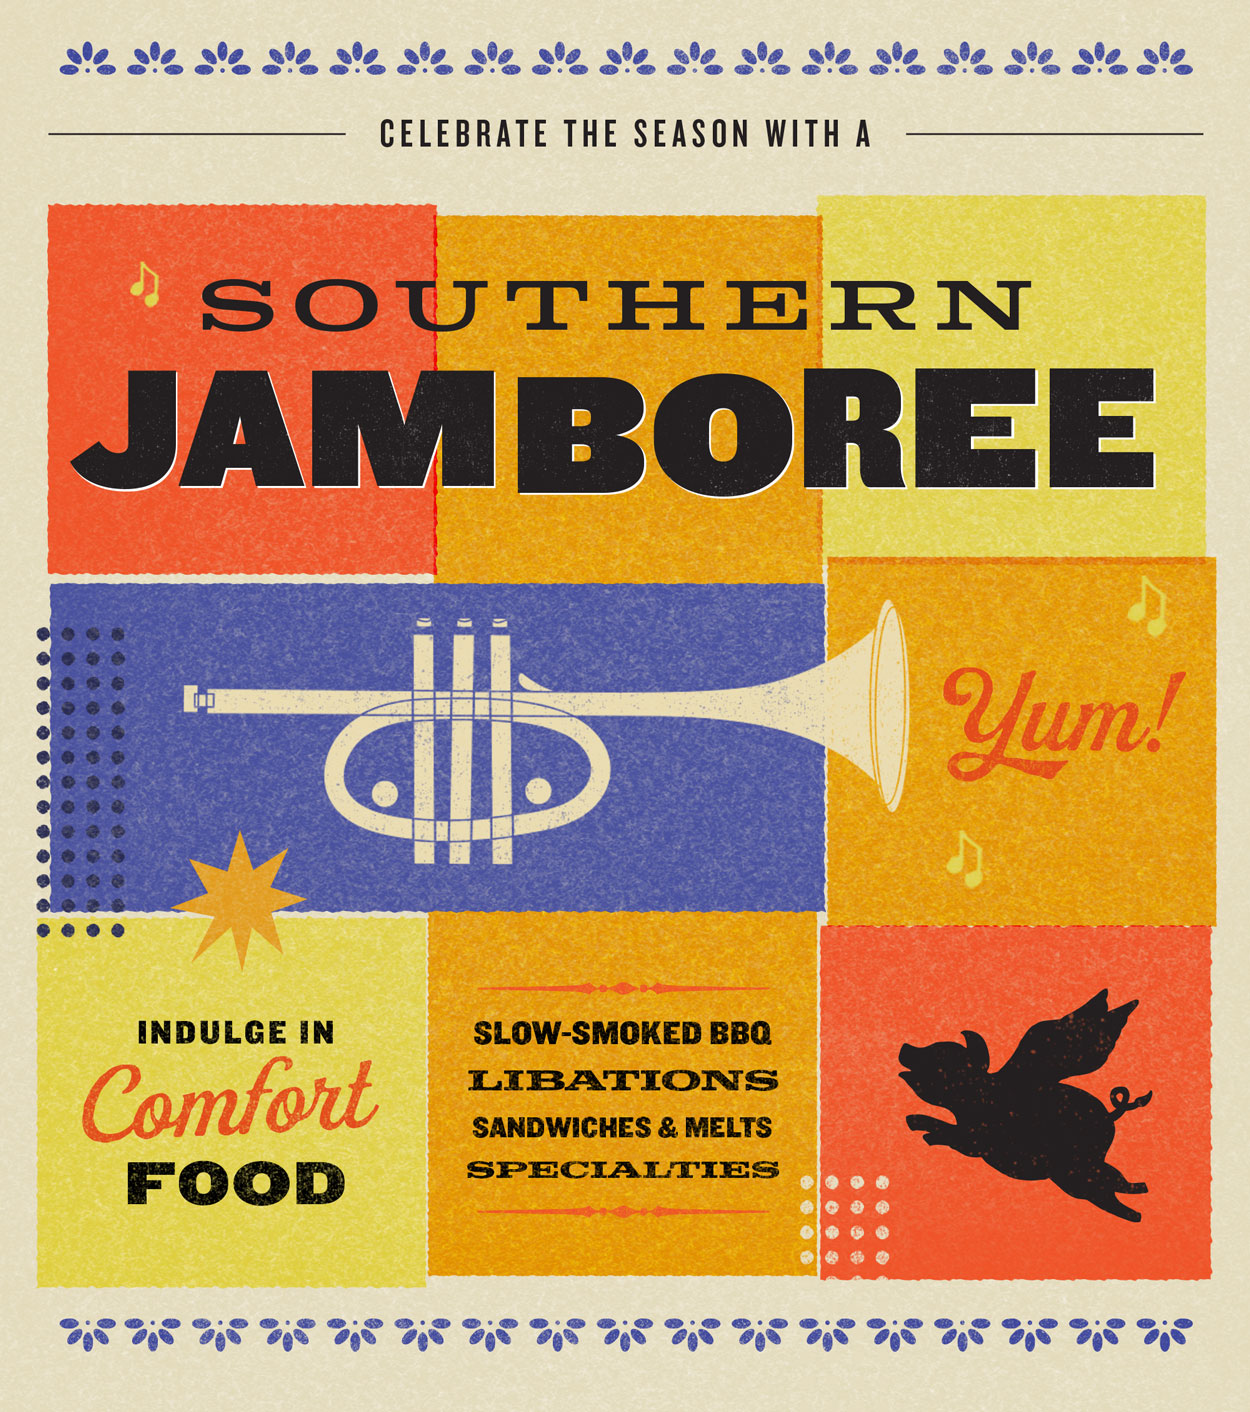 Celebrate the season with a Southern Jamboree